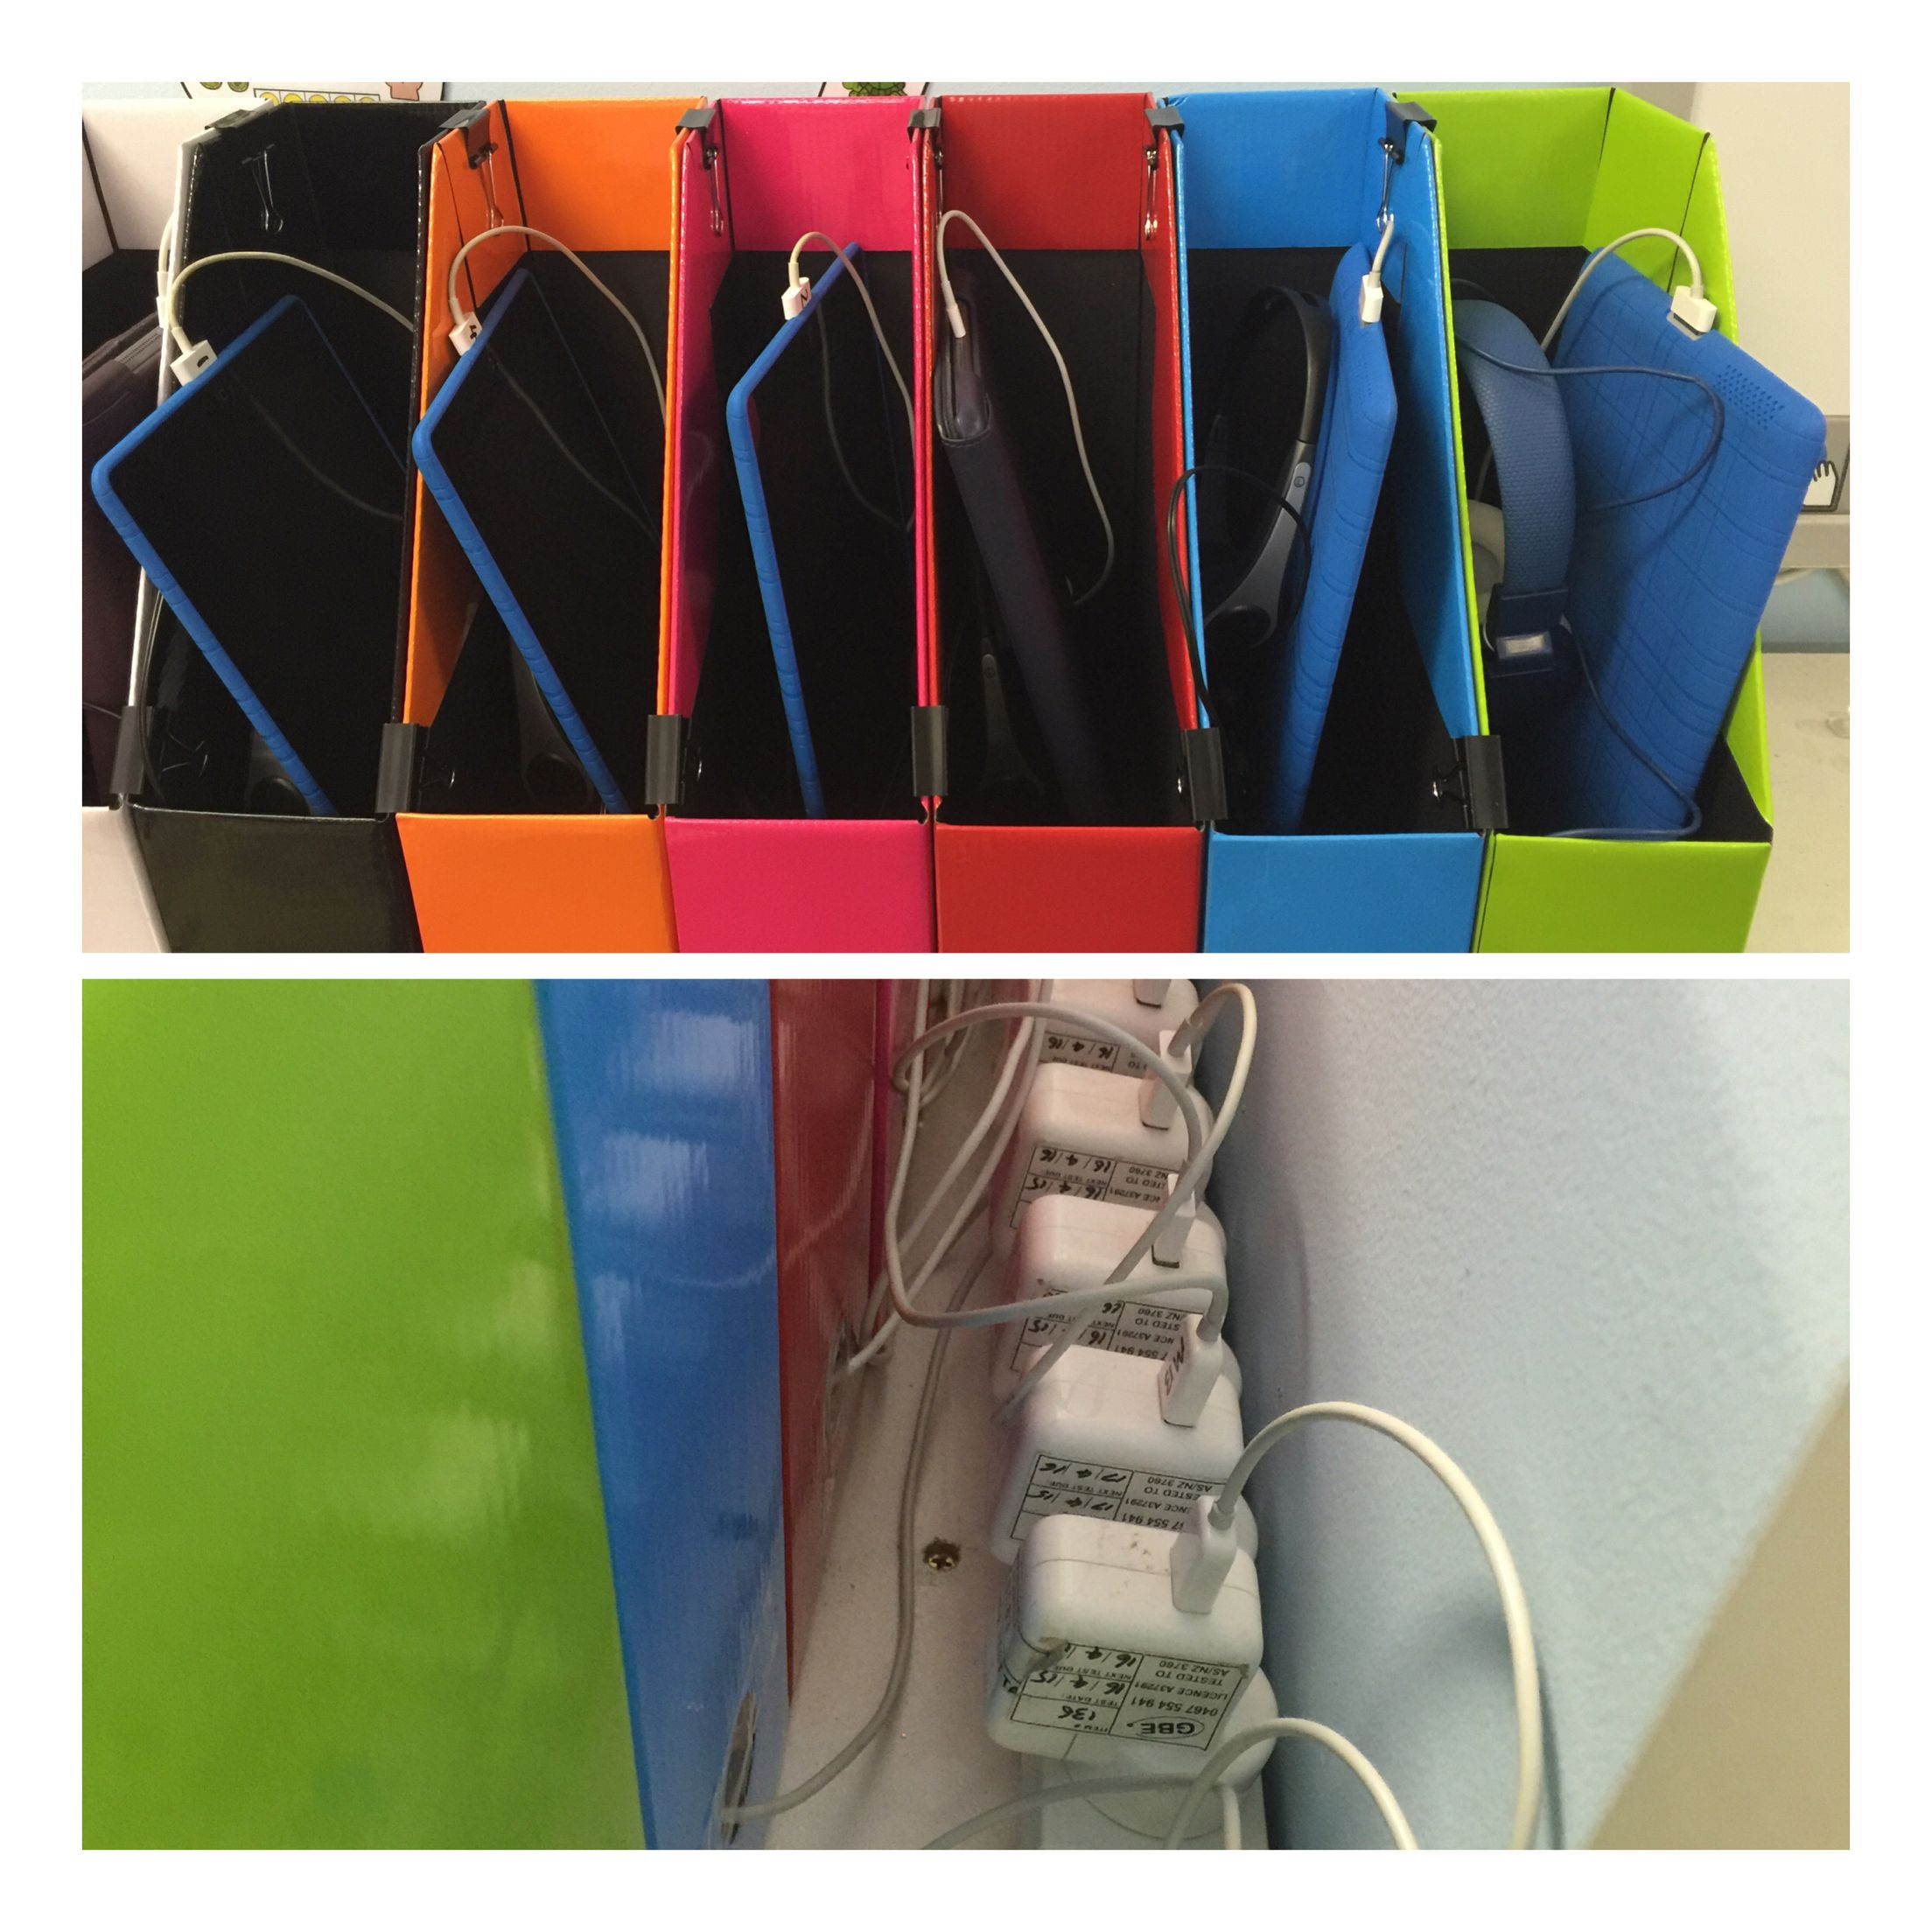 Hanging Charging Station My New Ipad Storage And Charging Station For My Classroom Each